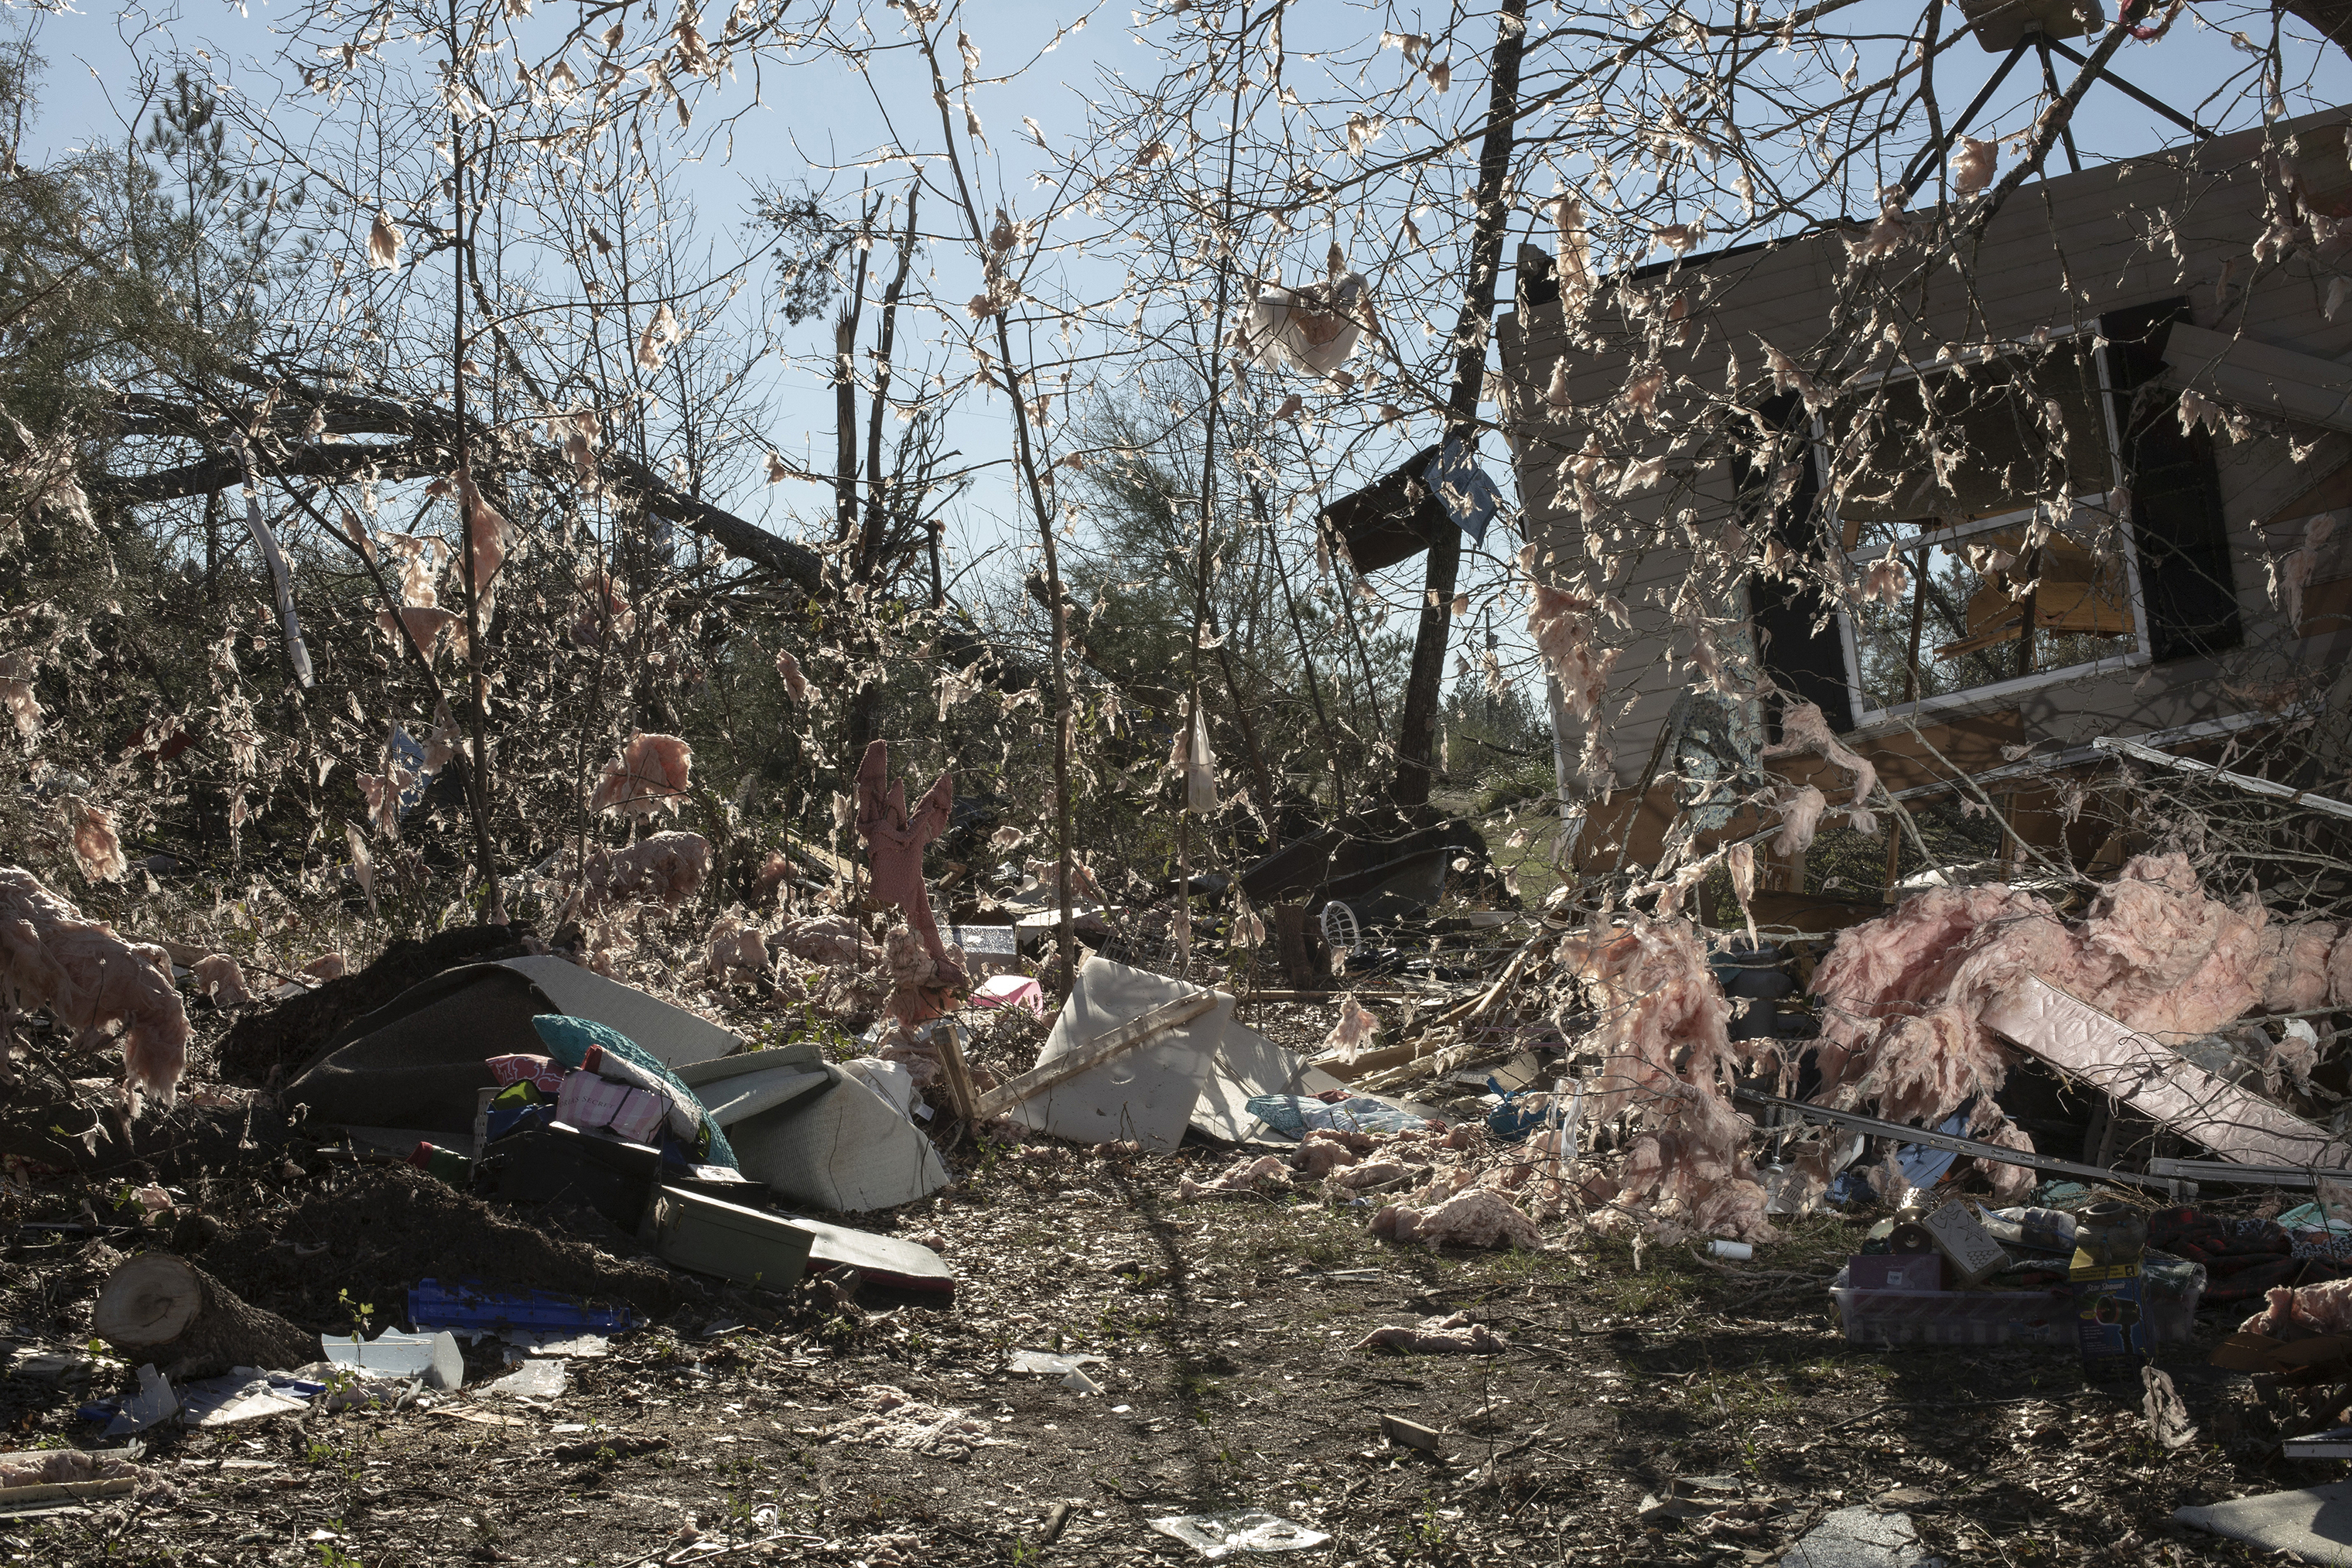 Insulation from a home was scattered in the trees after a tornado passed through the area, killing 23 people and destroying homes, in Beauregard, Ala., on March 4.